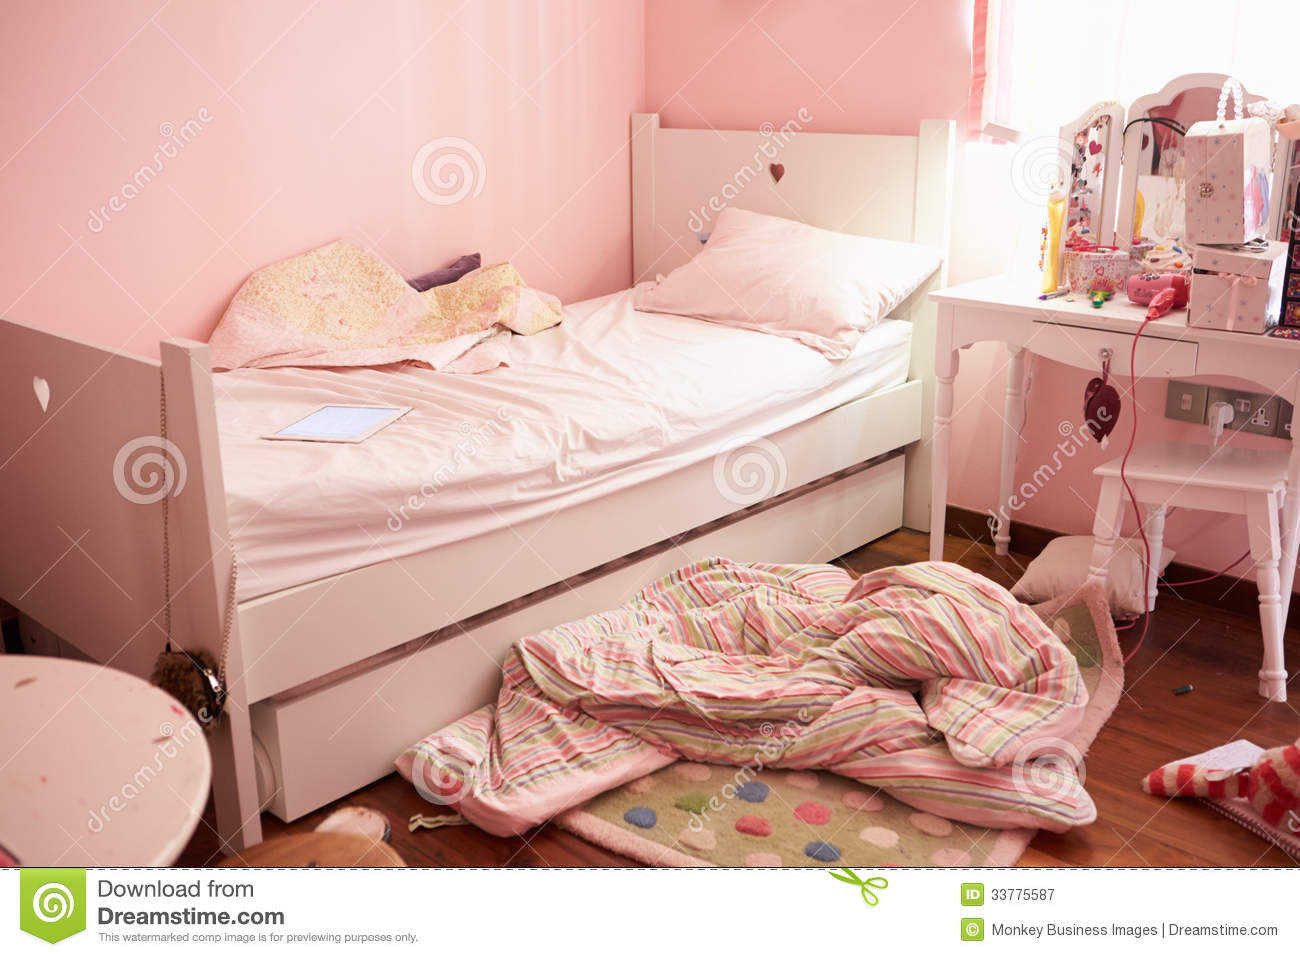 Empty and untidy child 39 s bedroom royalty free stock photography image 33775587 - Image bed room ...